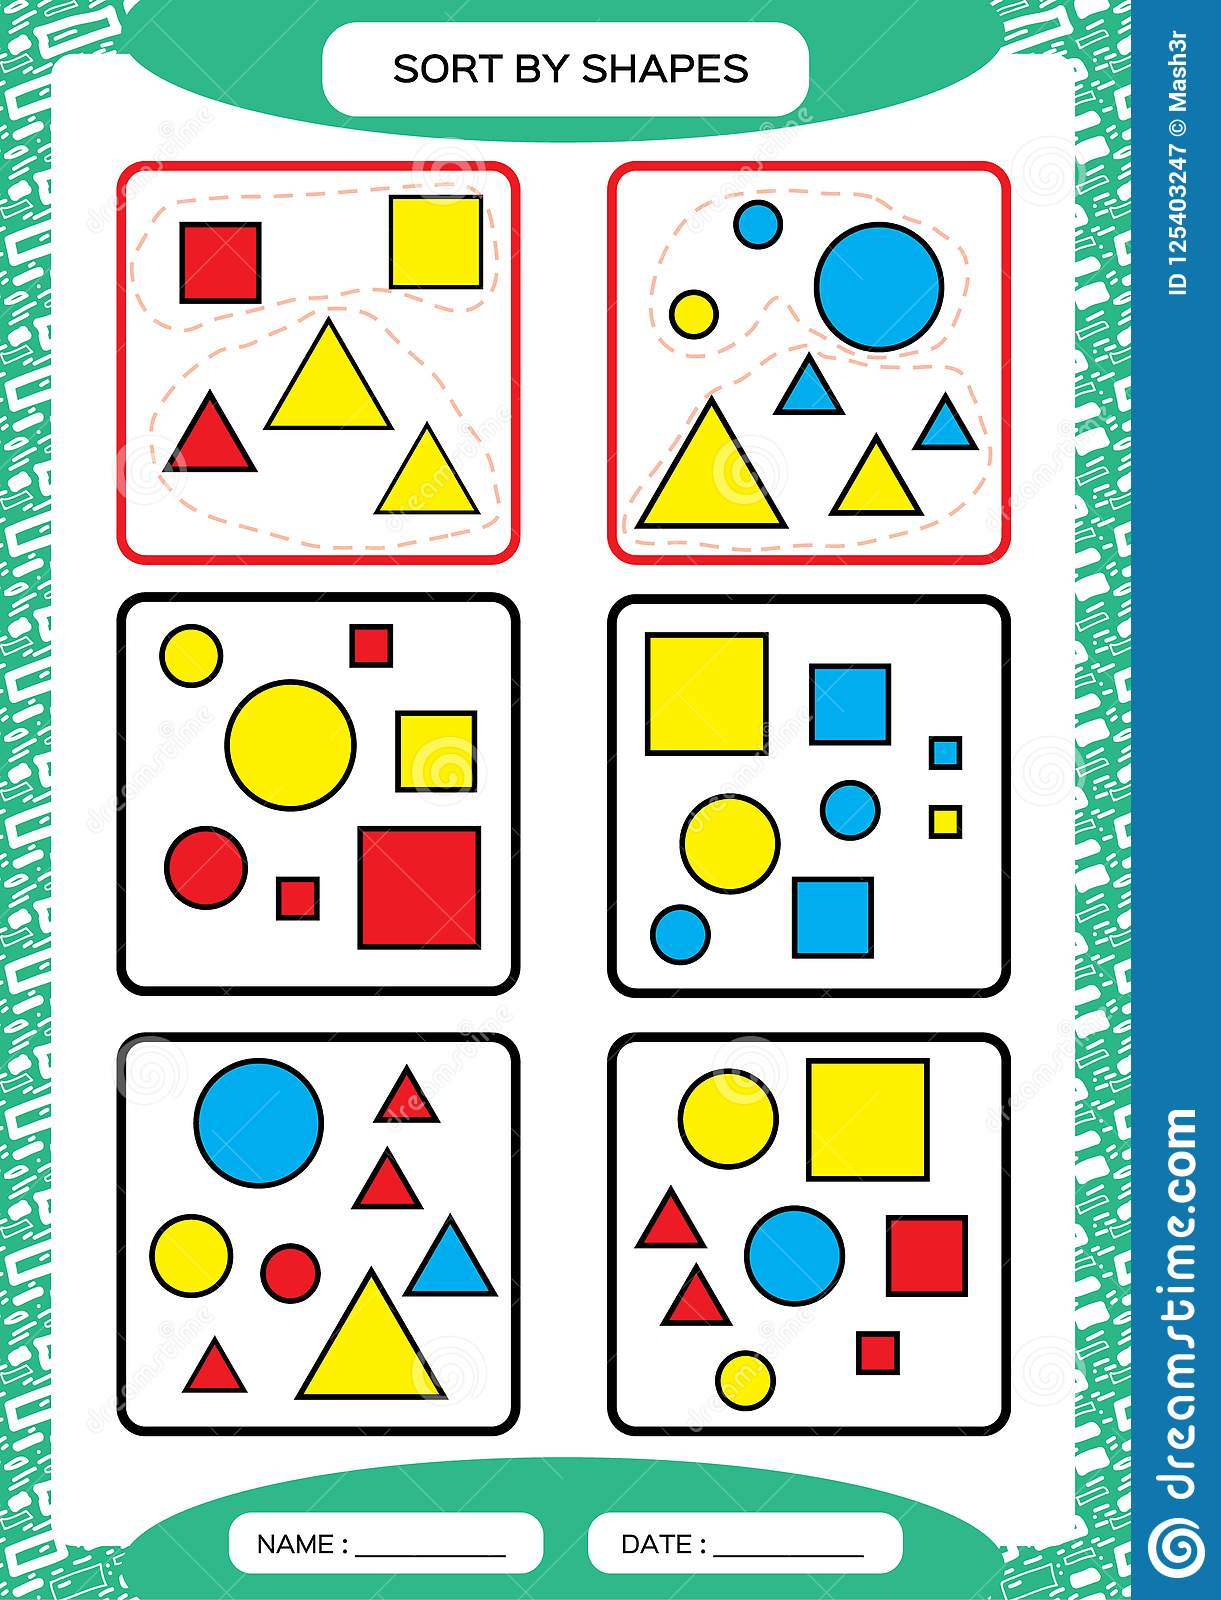 Sort By Shapes Sorting Game Group By Shapes